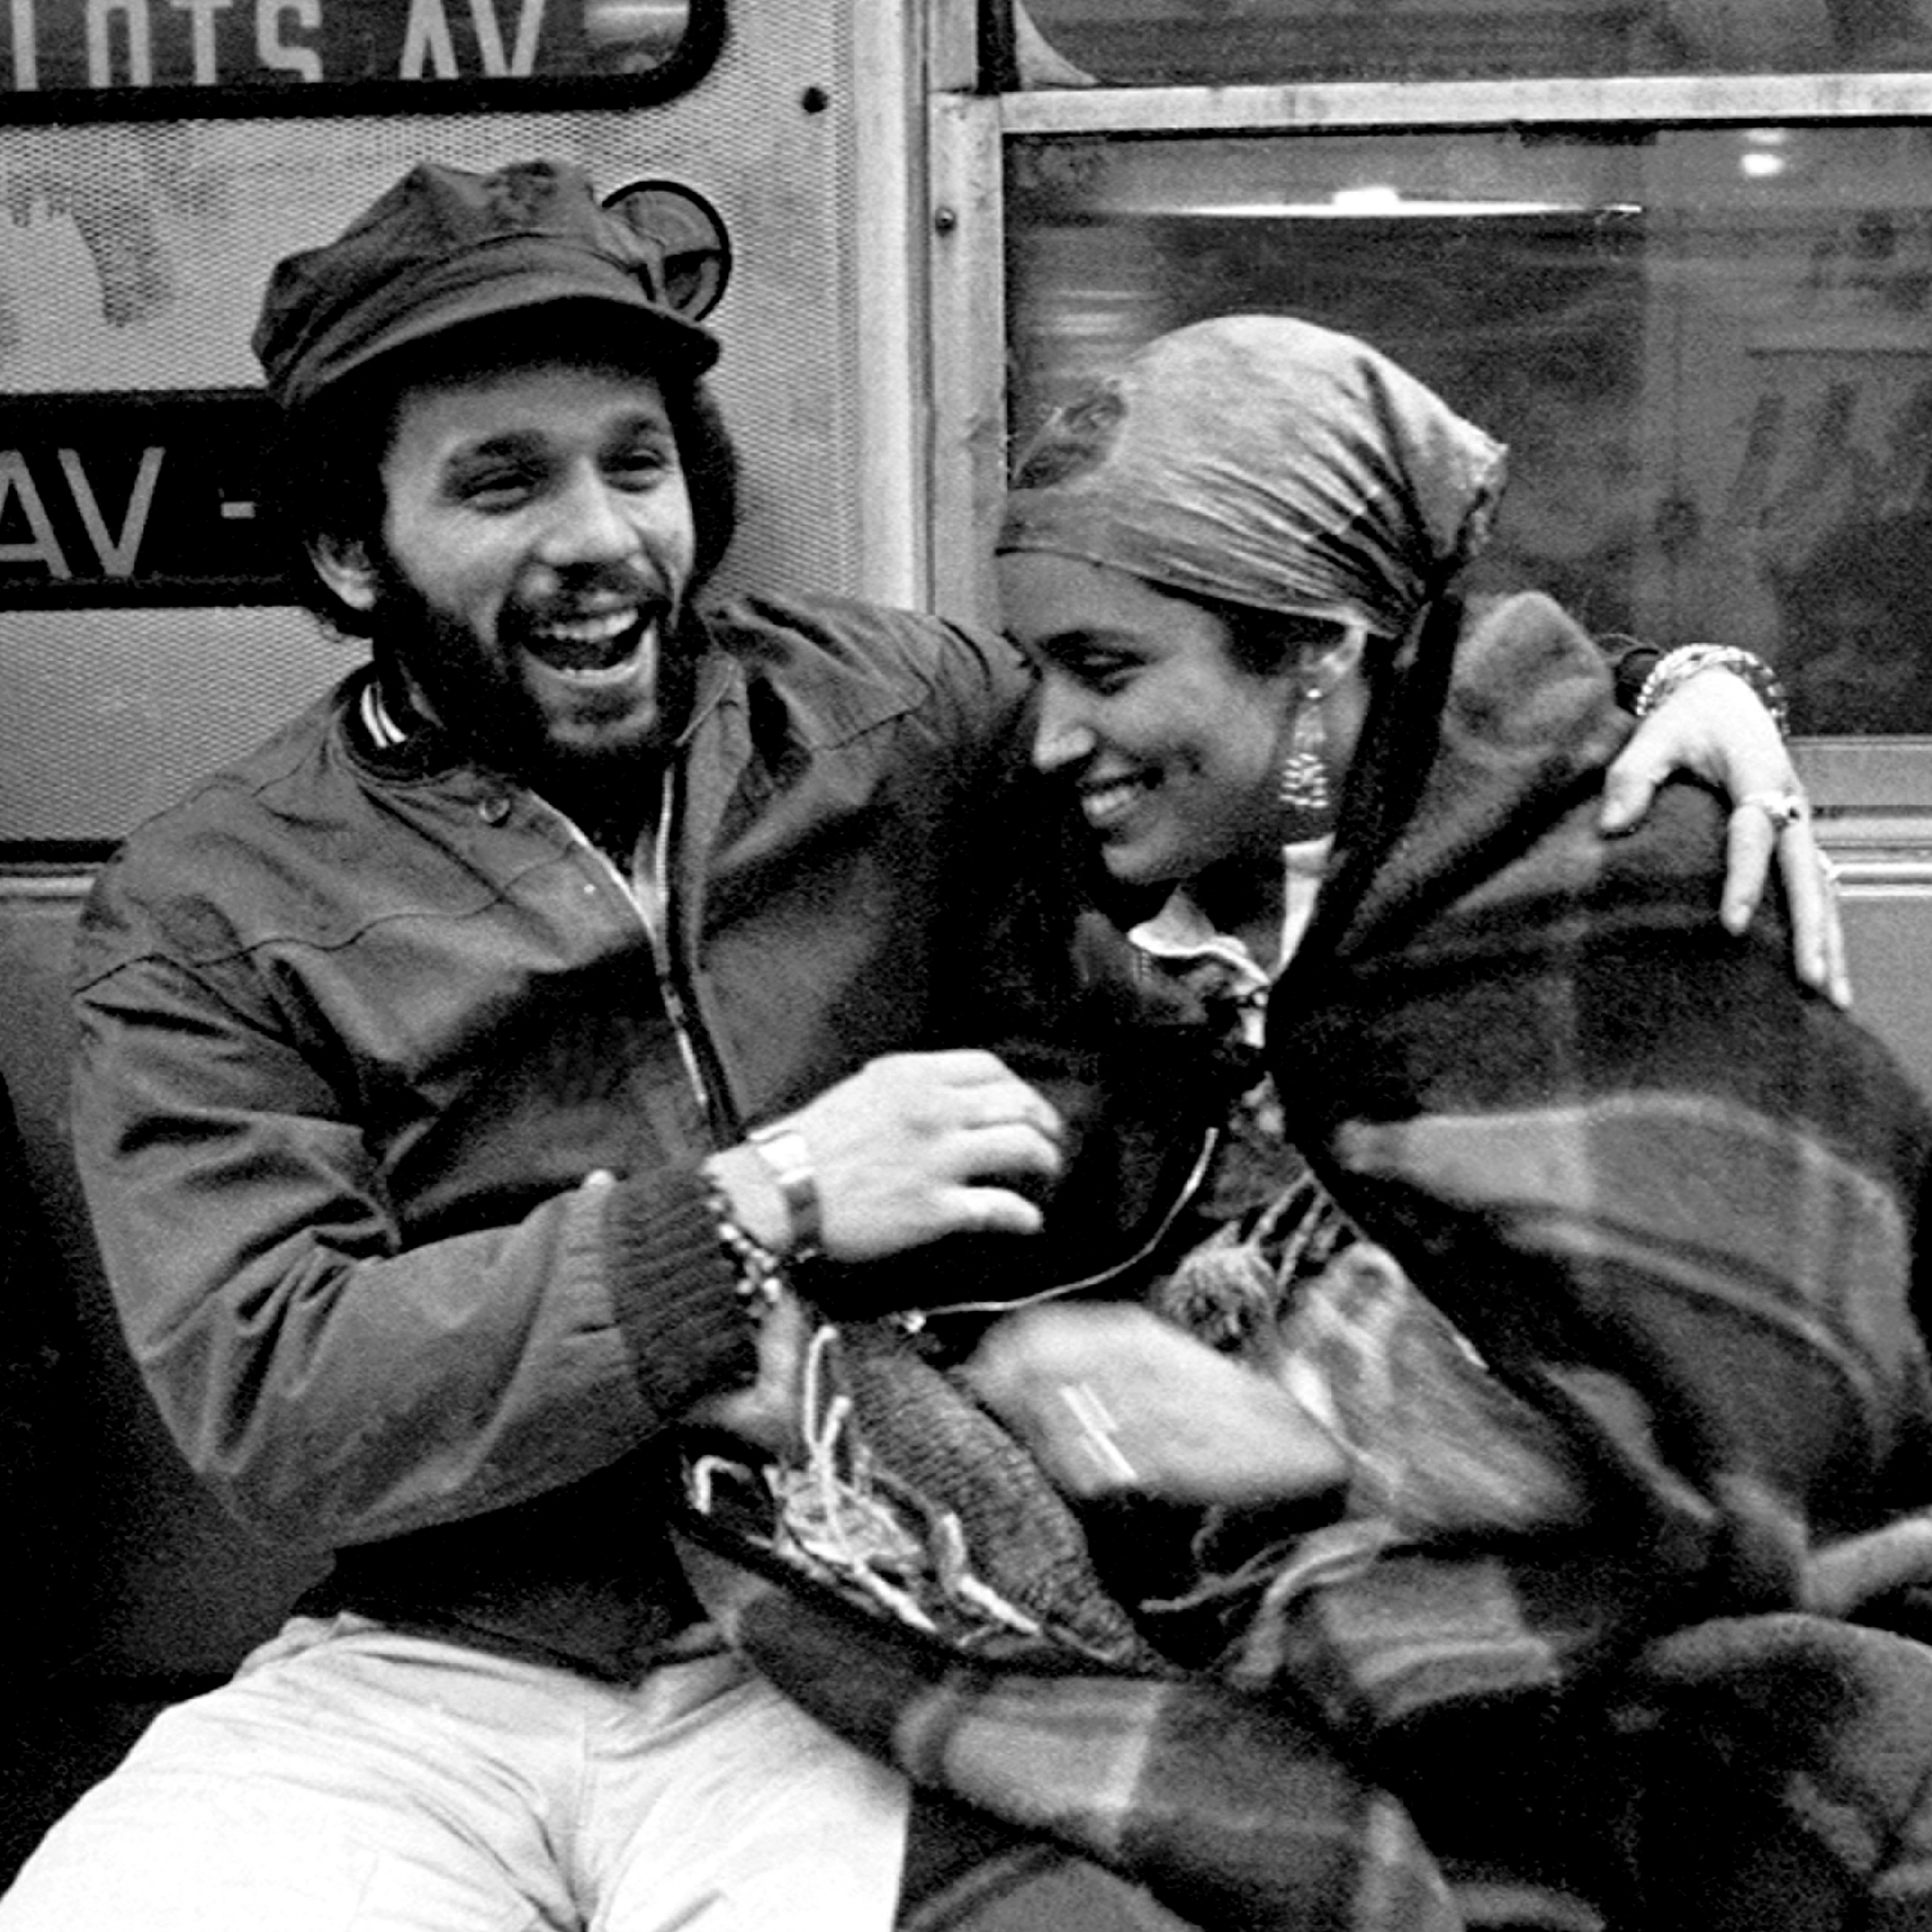 Miguel Piñero of the Nuyorican literary movement and poet Sandra Maria Esteves on the train in New York City in 1977.